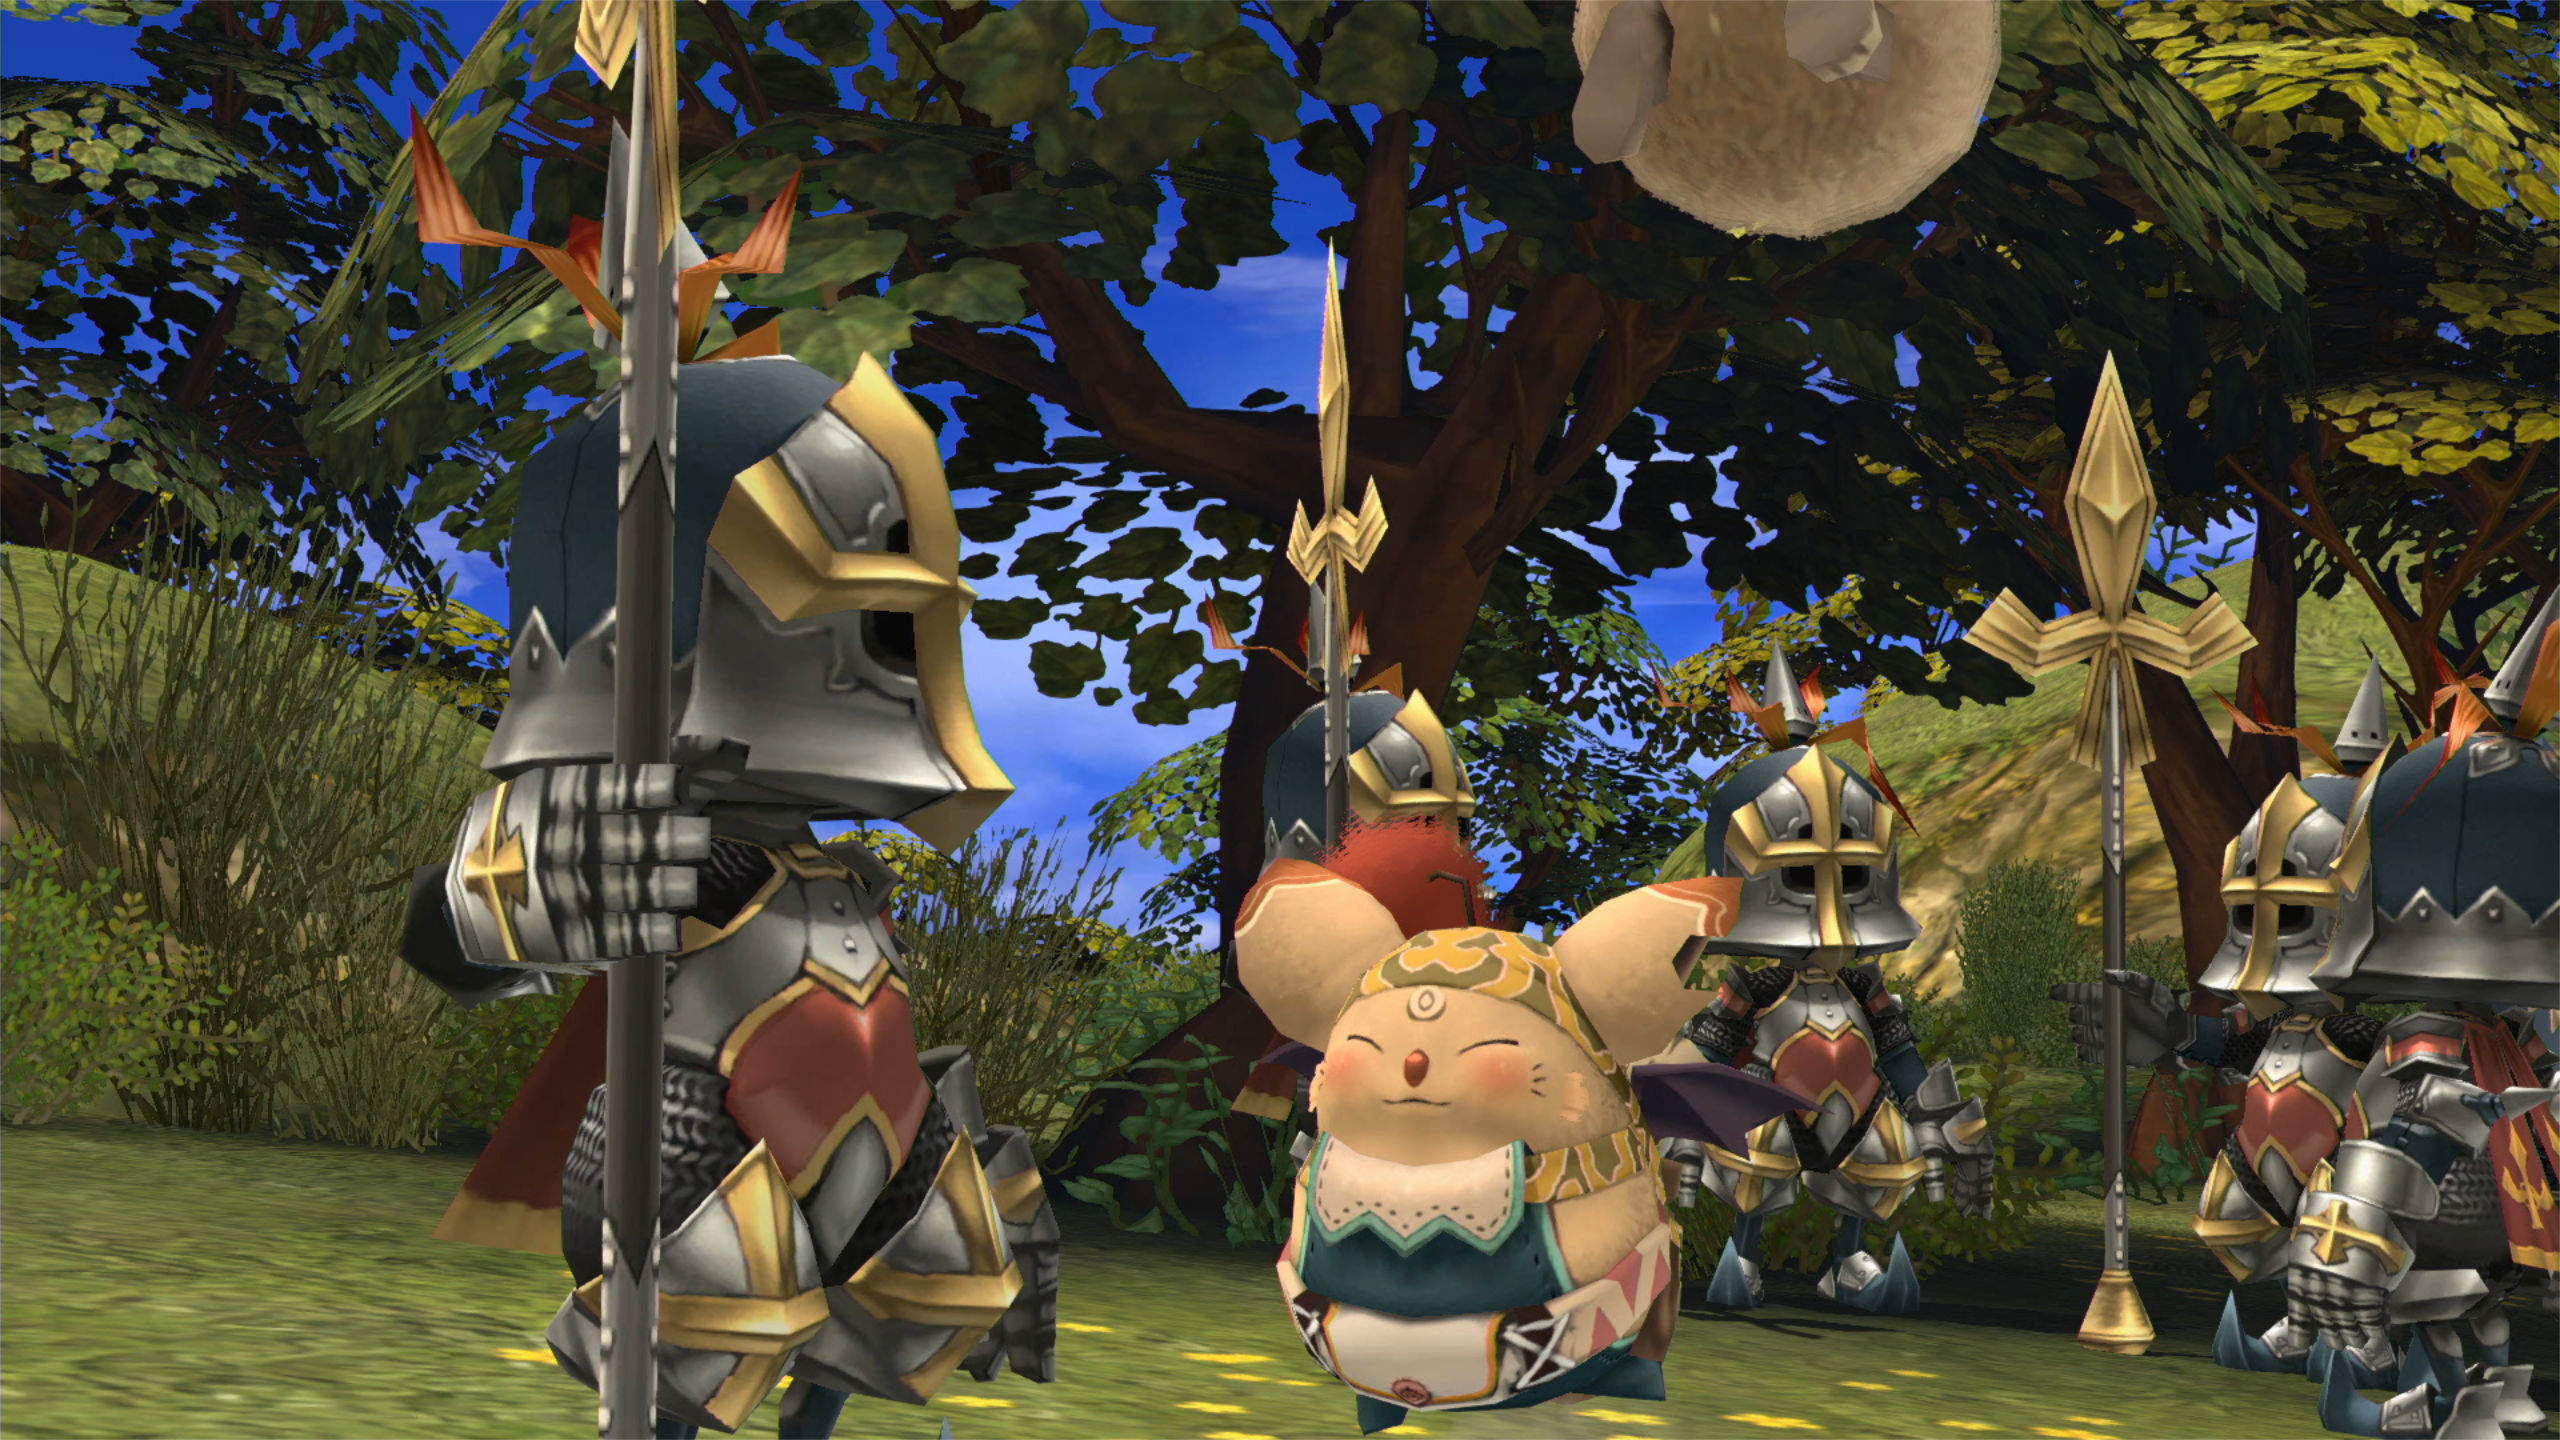 Screenshot From Final Fantasy Crystal Chronicles Remastered Edition Featuring A Moogle